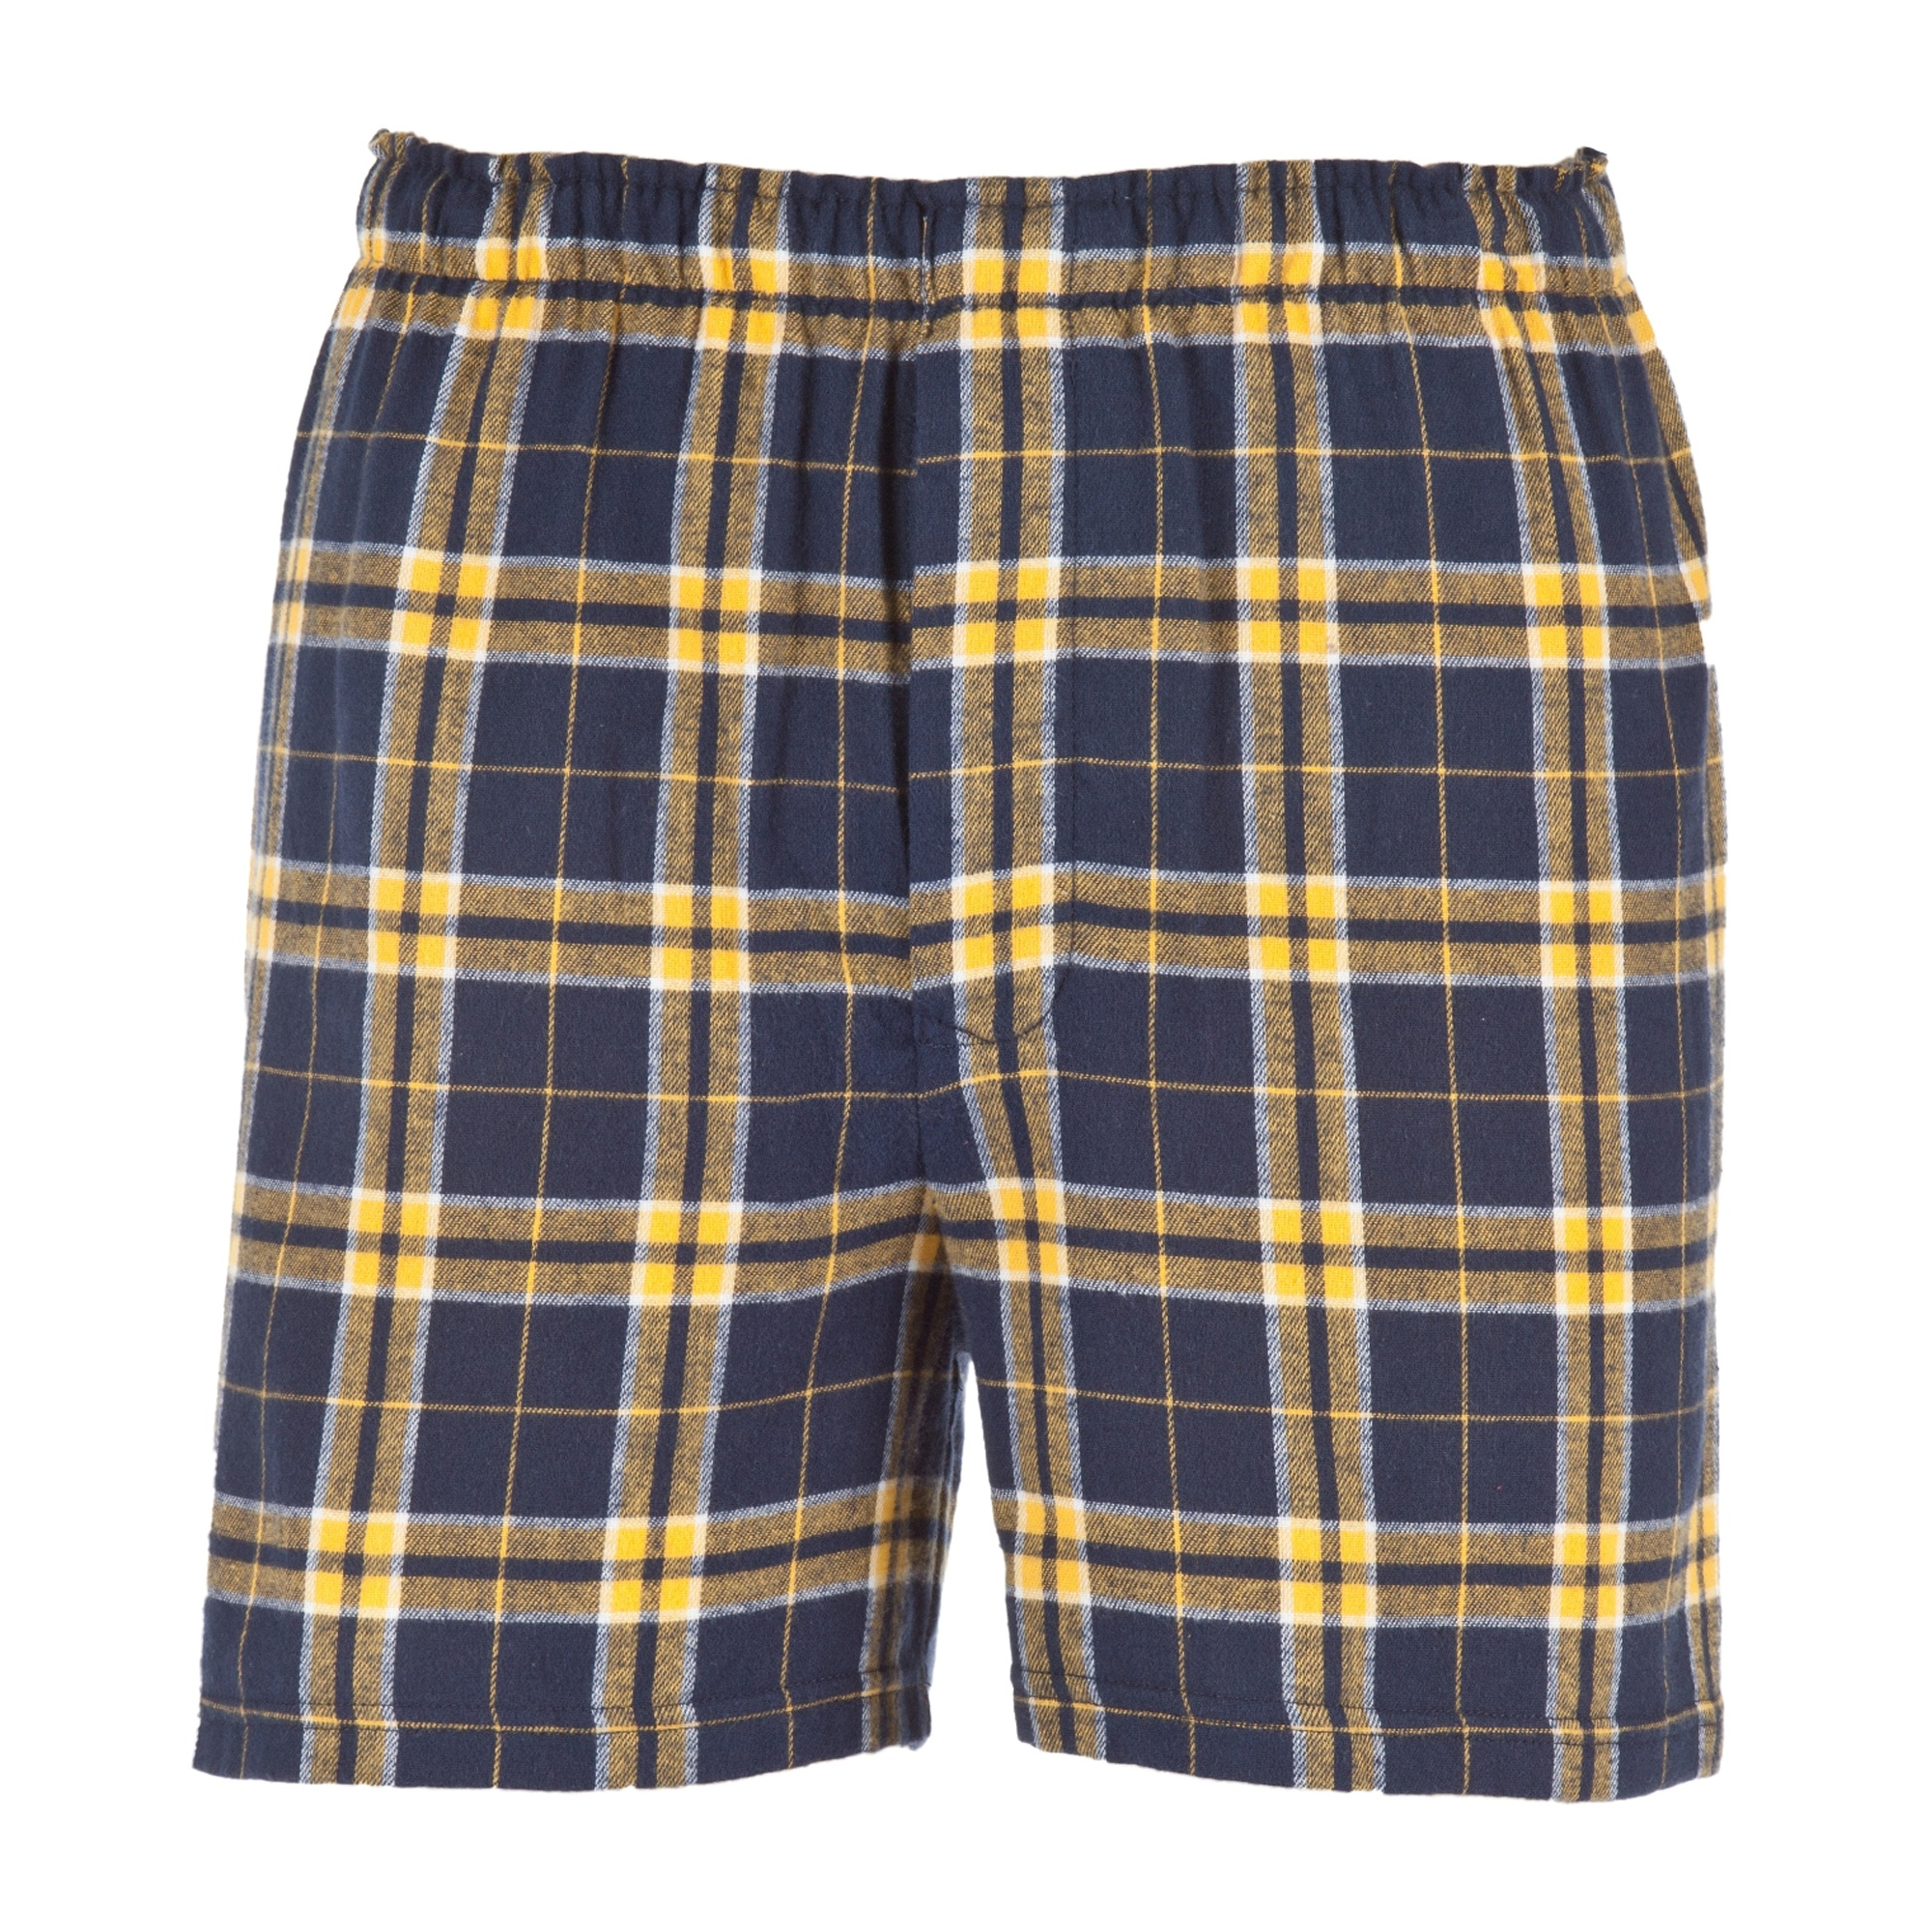 Find great deals on eBay for mens flannel underwear. Shop with confidence.